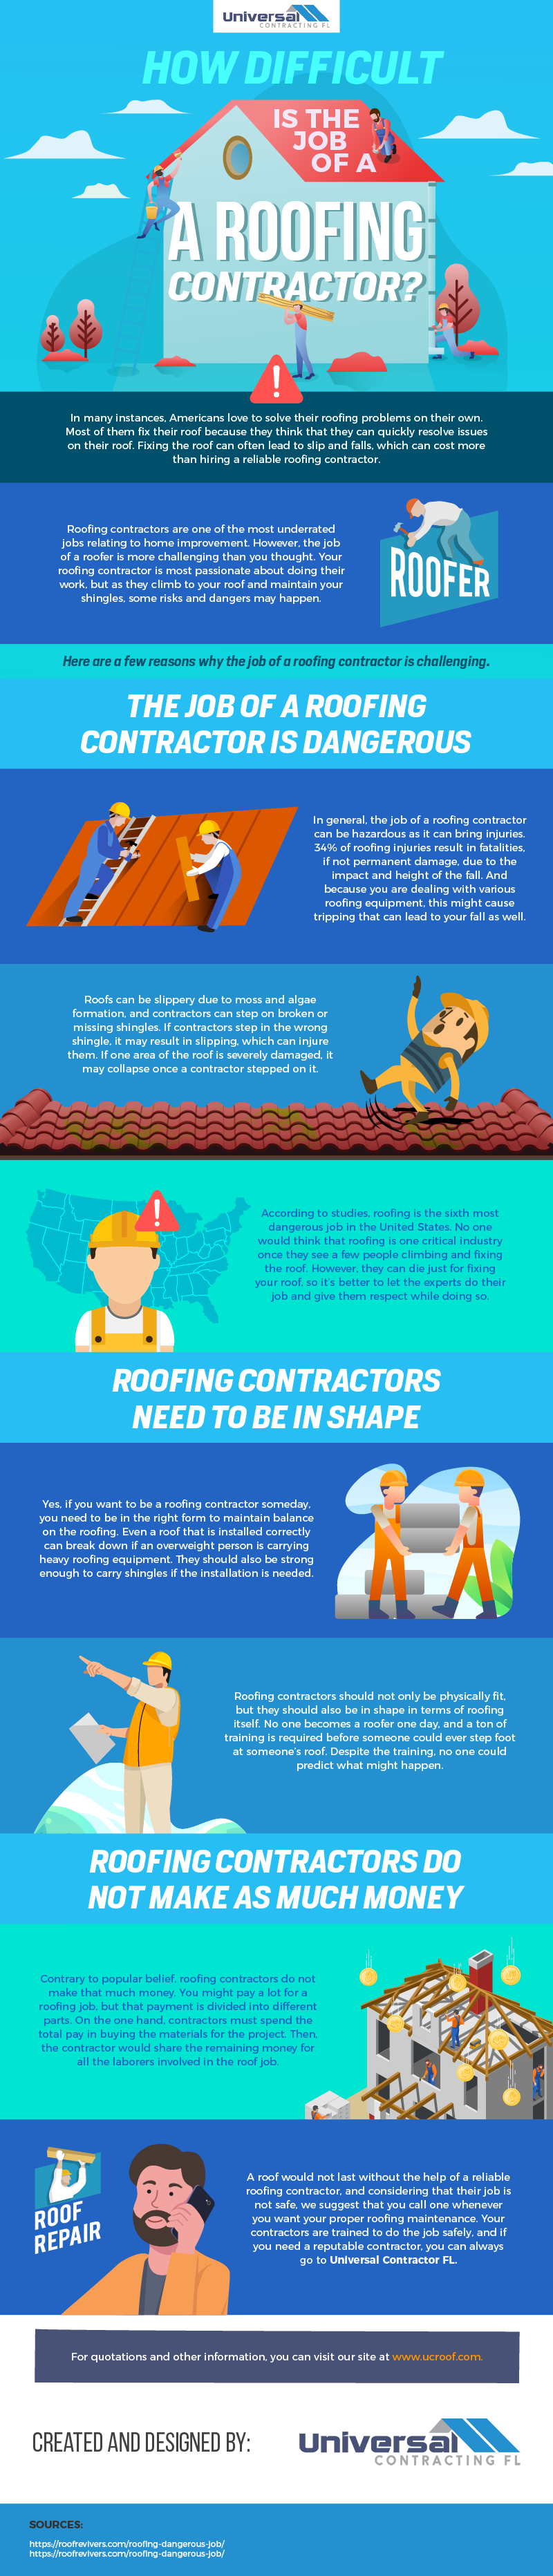 How Difficult is the Job of a Roofing Contractor - Infographic